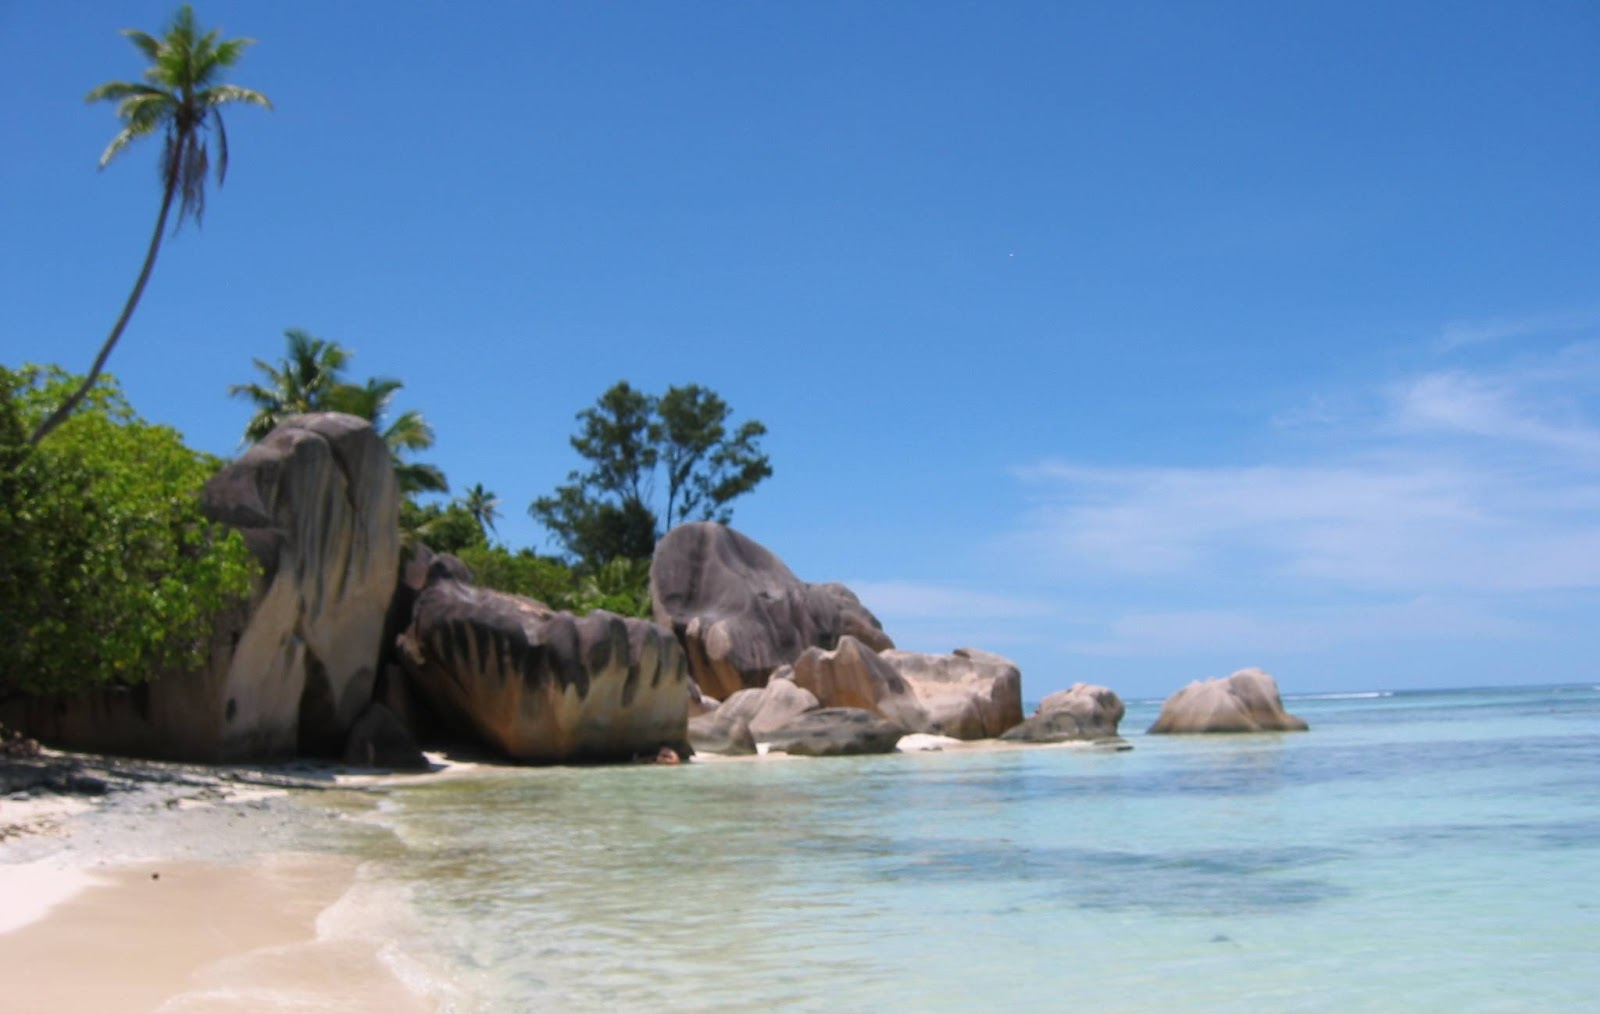 Seychelles Islands Seychelles  City pictures : Seychelles Islands Seychelles Tourist Attractions Exotic Travel ...